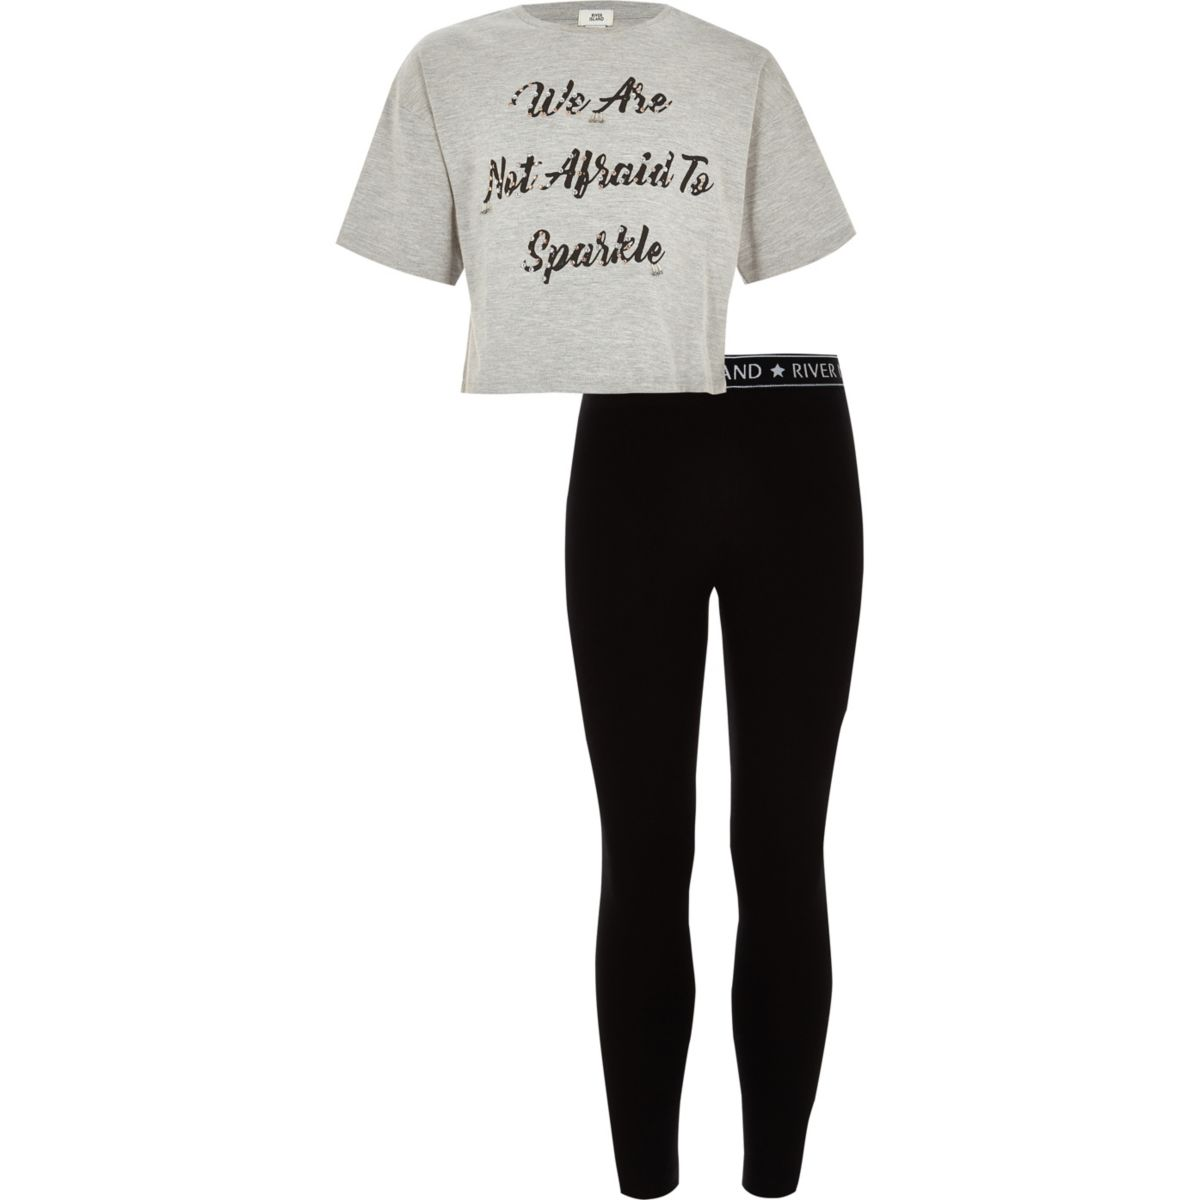 Girls grey 'not afraid' T-shirt  outfit